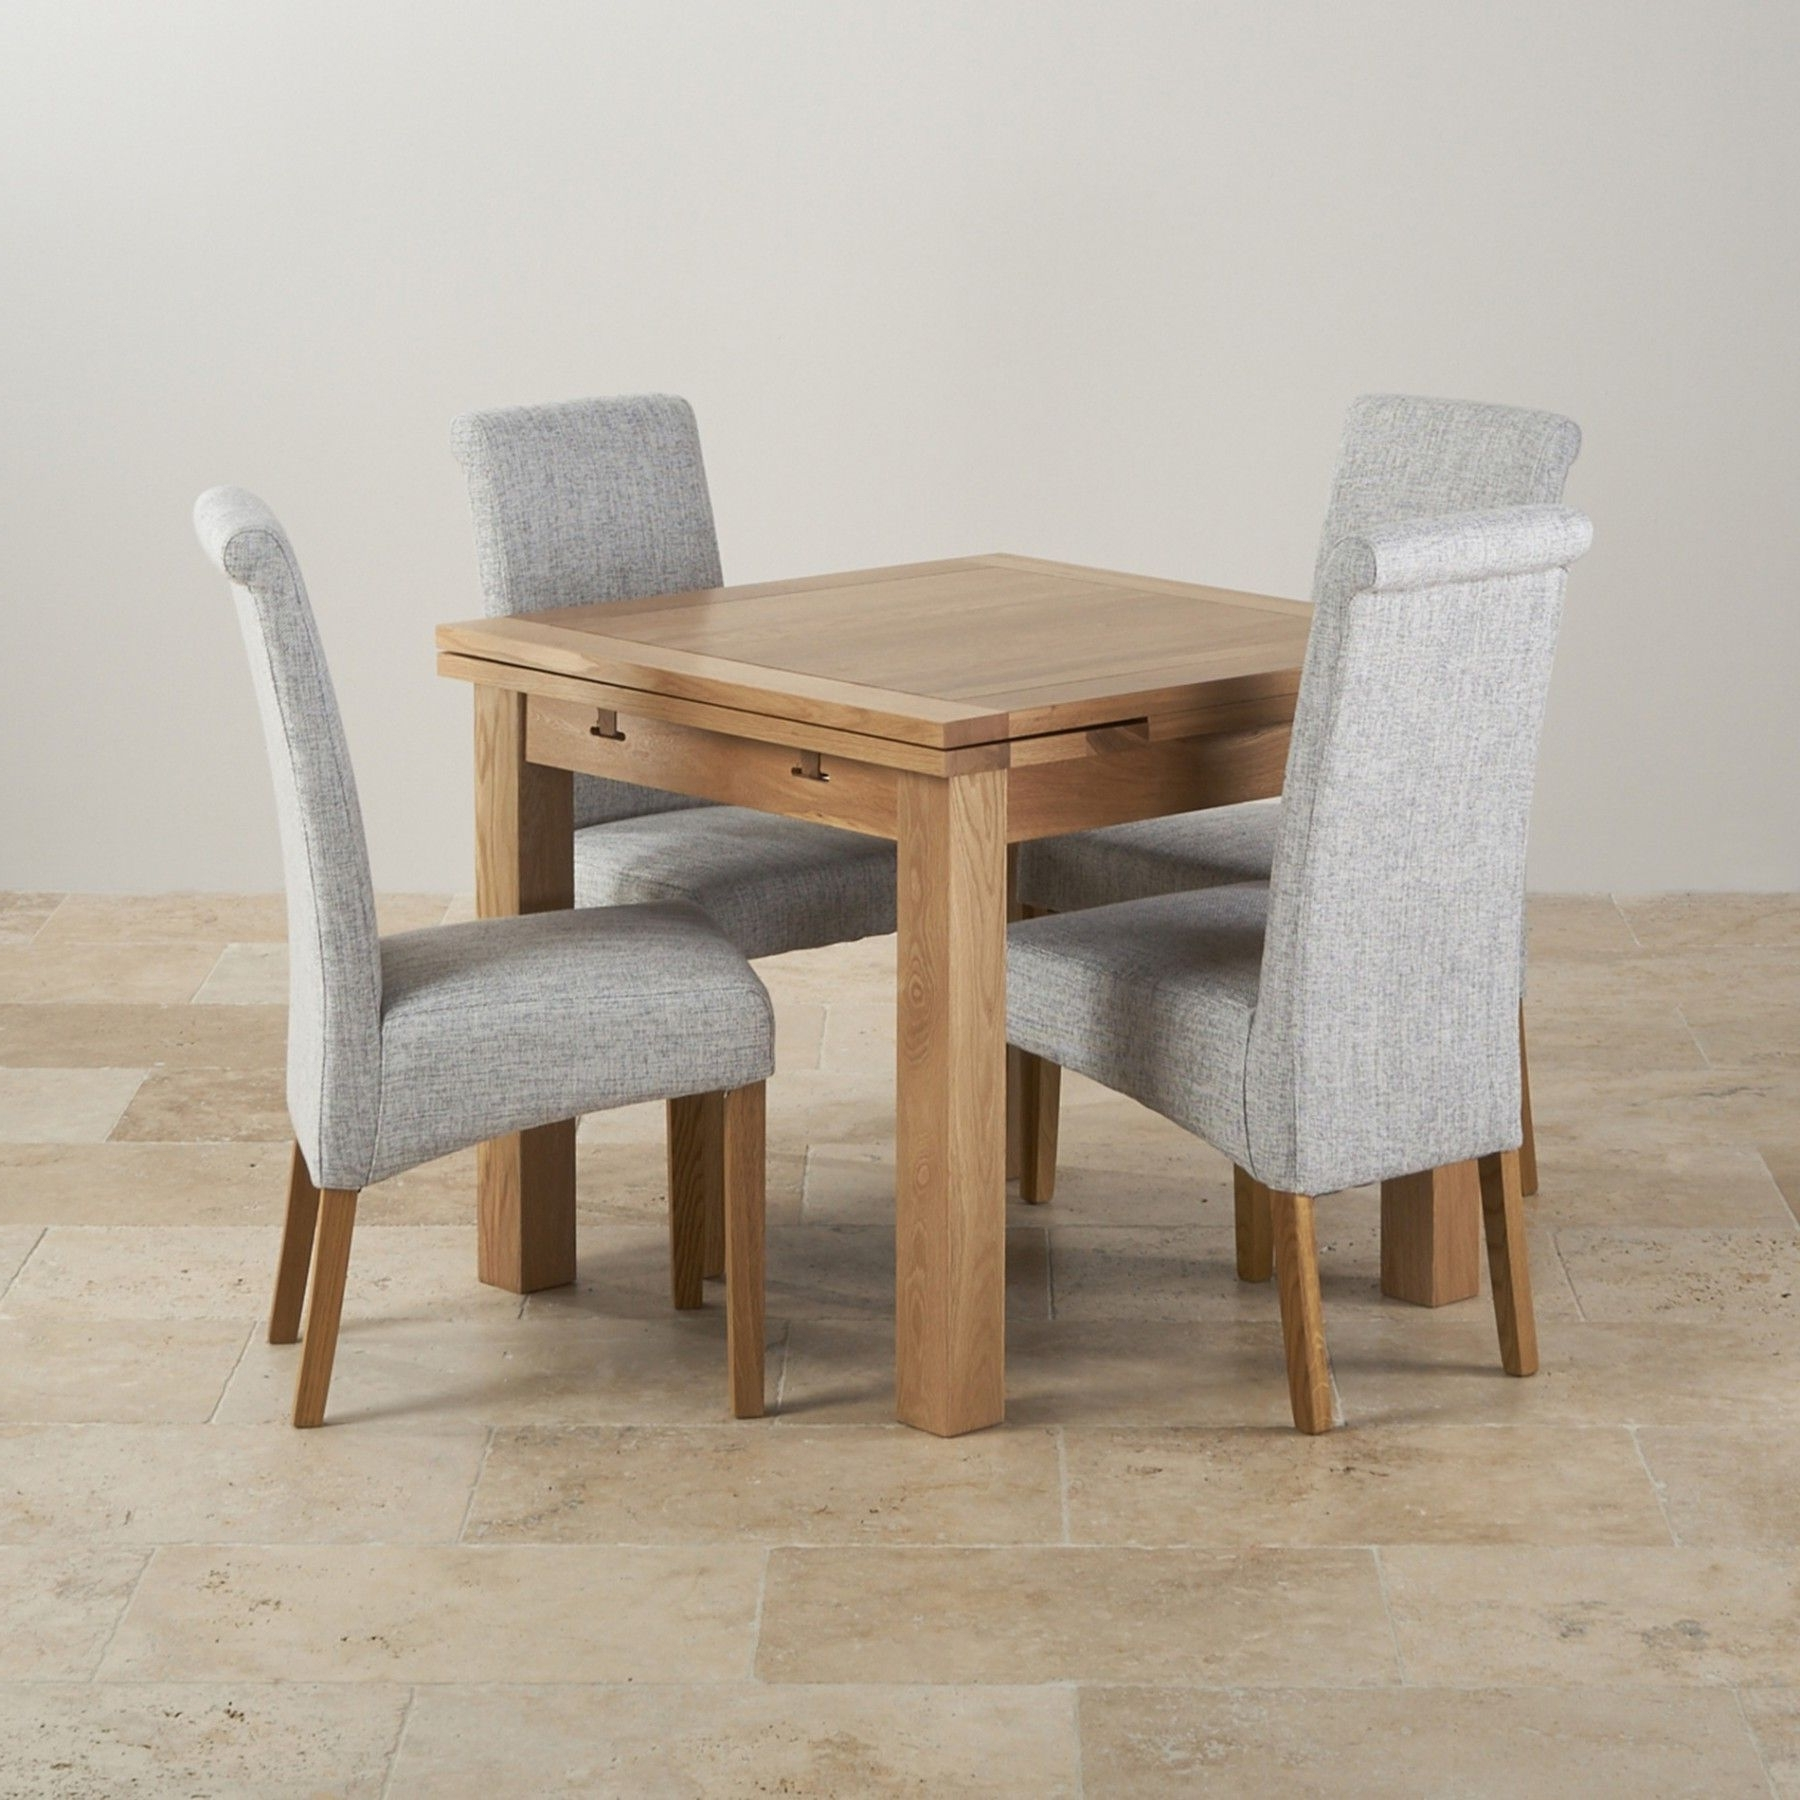 Most Recent Dorset Natural Solid Oak Dining Set – 3Ft Extending Table With 4 Intended For Small Extending Dining Tables And 4 Chairs (Gallery 13 of 25)